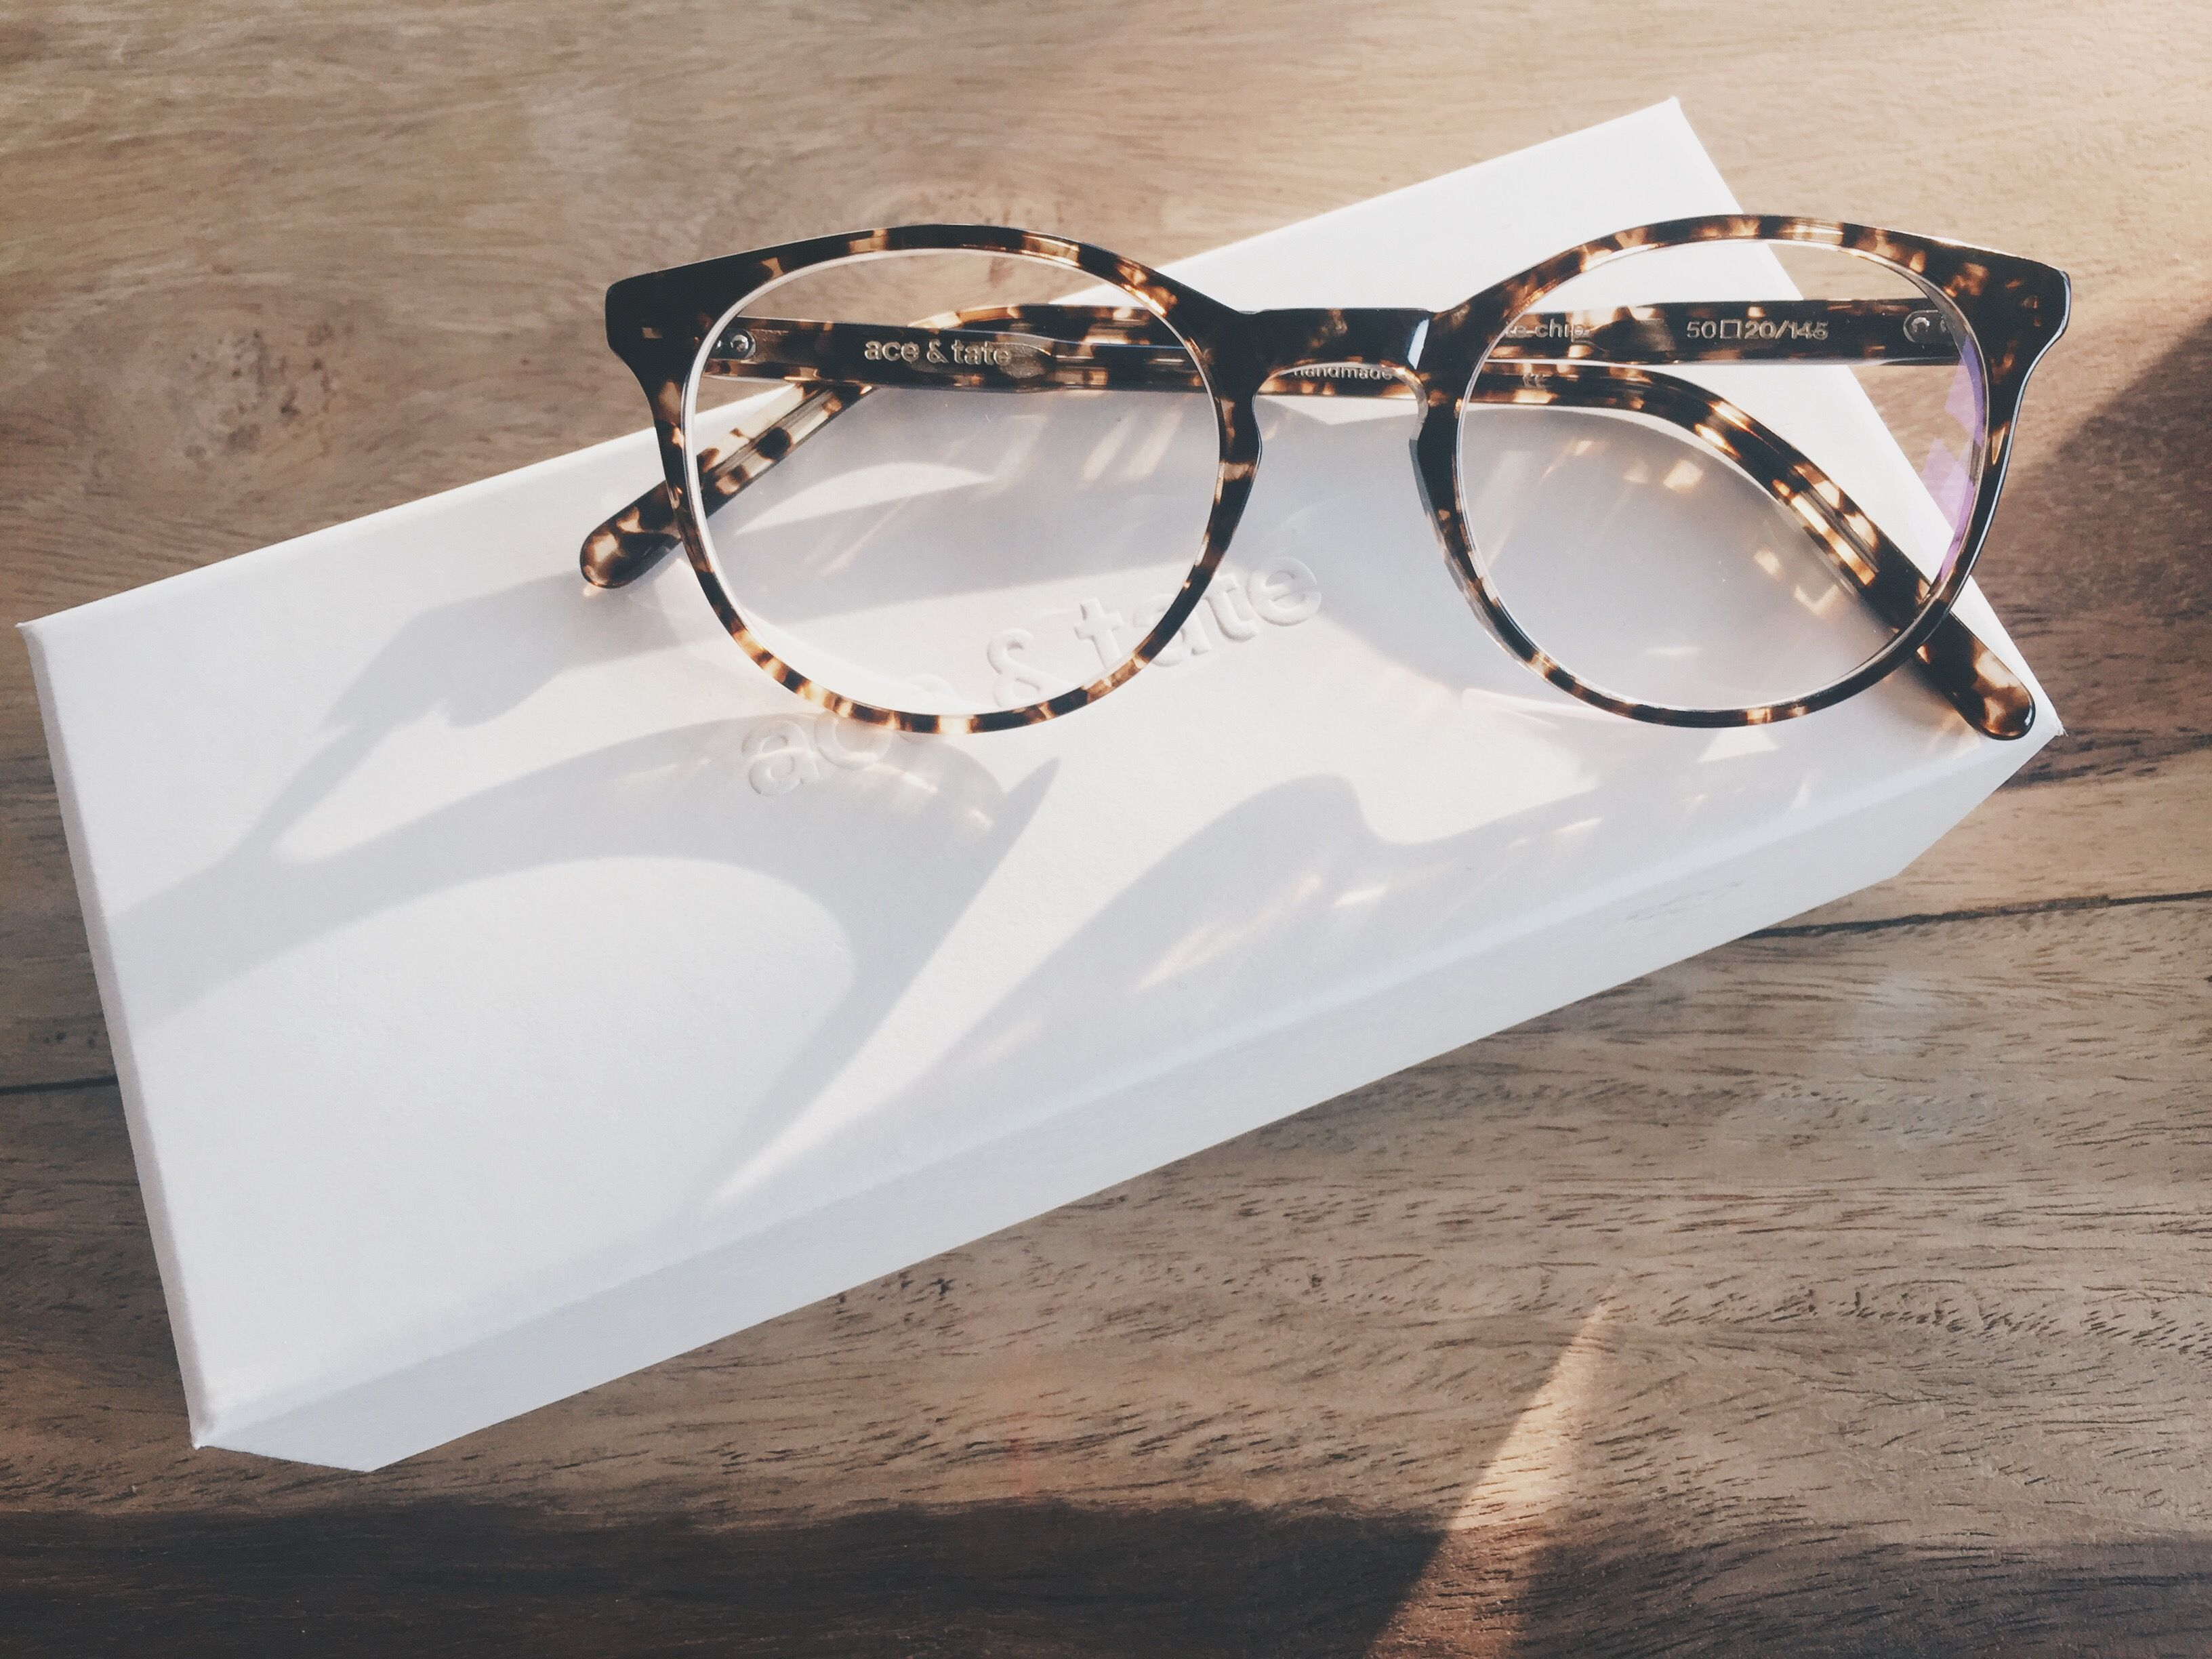 Ace&Tate Miles Chocolate Chip | STYLEGUIDE | Pinterest | Brille ...